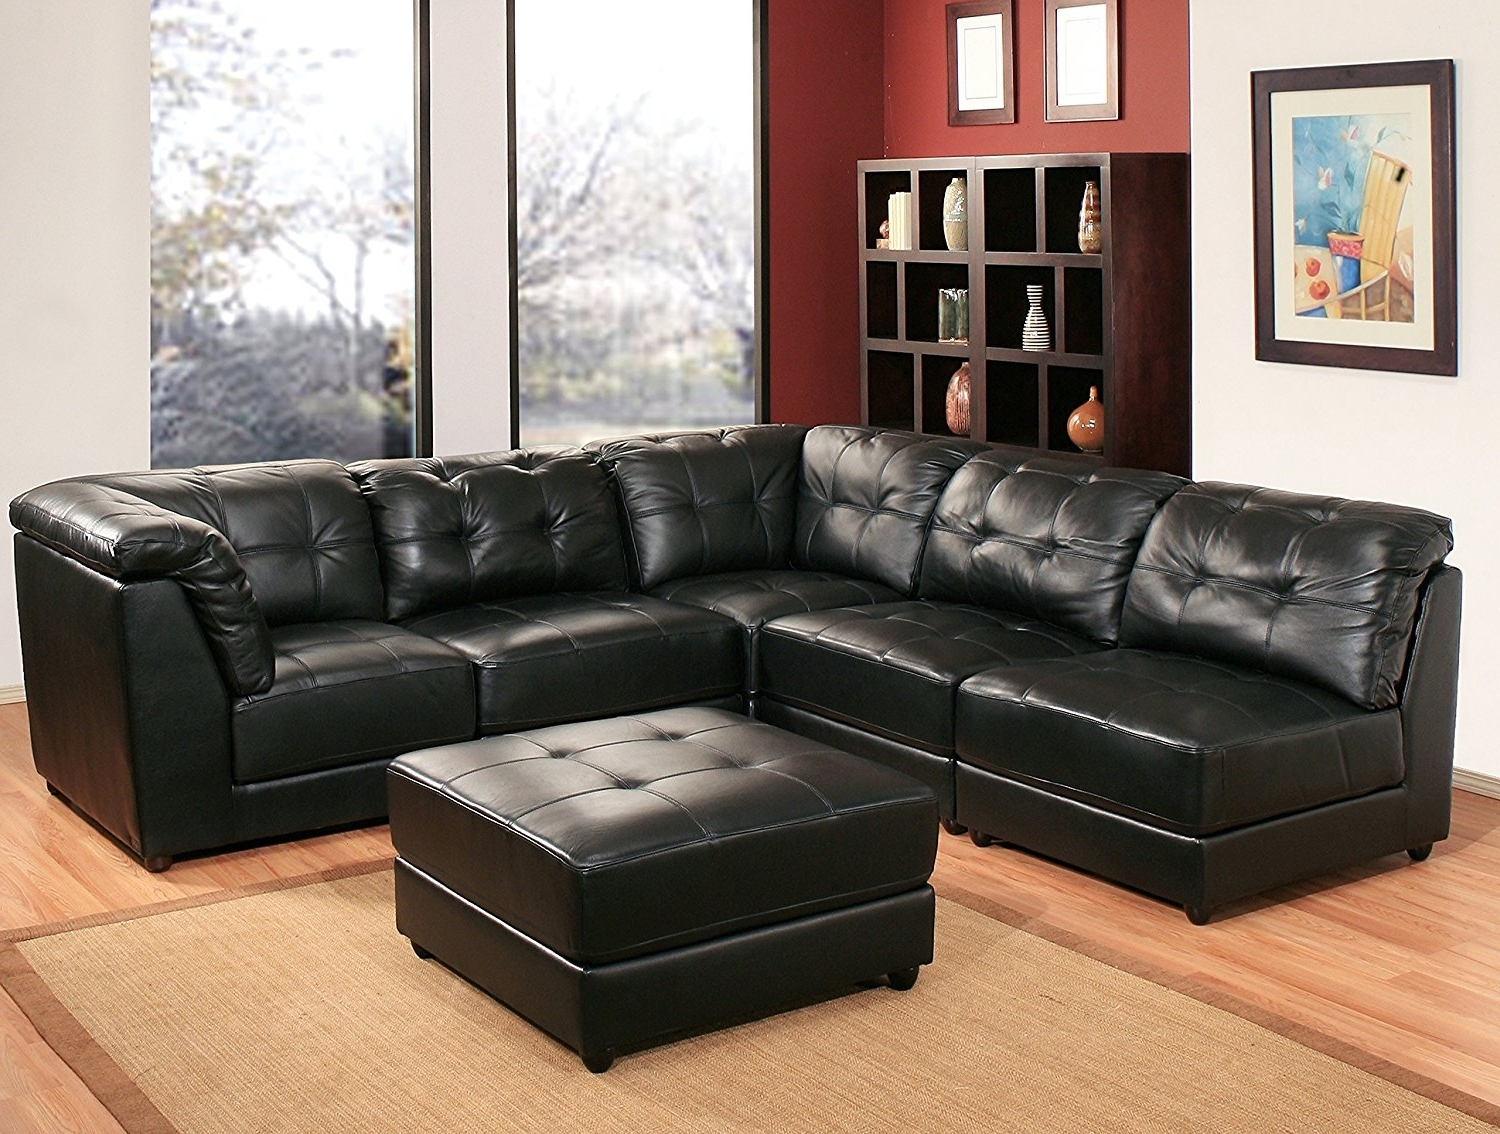 Most Popular Leather Modular Sectional Sofas Throughout Amazon: Abbyson Donovan 5 Piece Modular Leather Sectional Sofa (View 1 of 15)